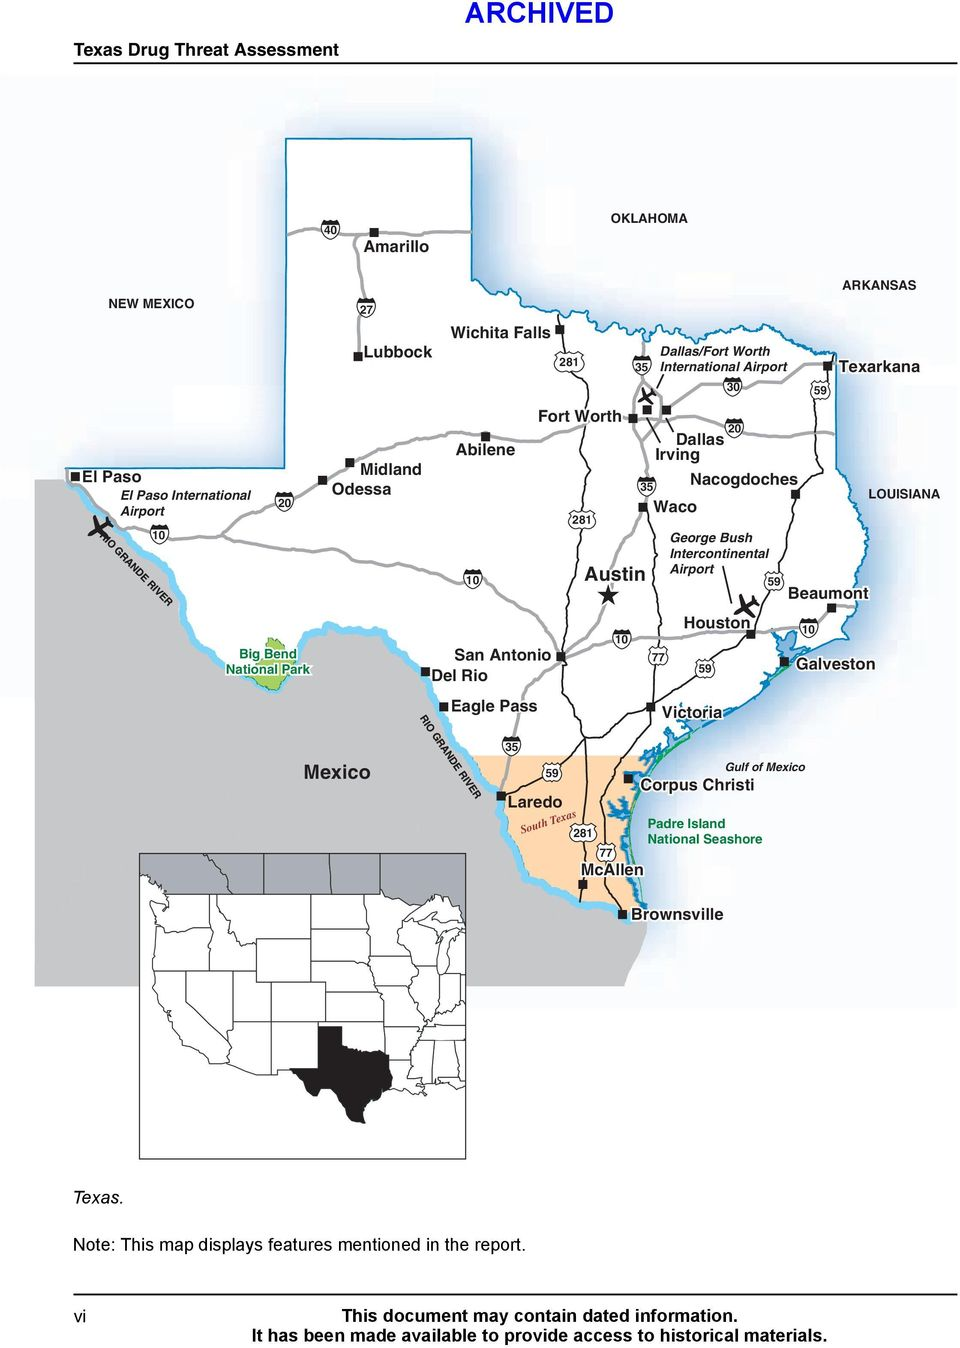 59 ER IV R 10 20 Nacogdoches 35 20 Houston 10 Big Bend National Park 59 San Antonio Del Rio 77 10 Galveston 59 Eagle Pass Beaumont O RI Victoria GR Gulf of Mexico 59 Corpus